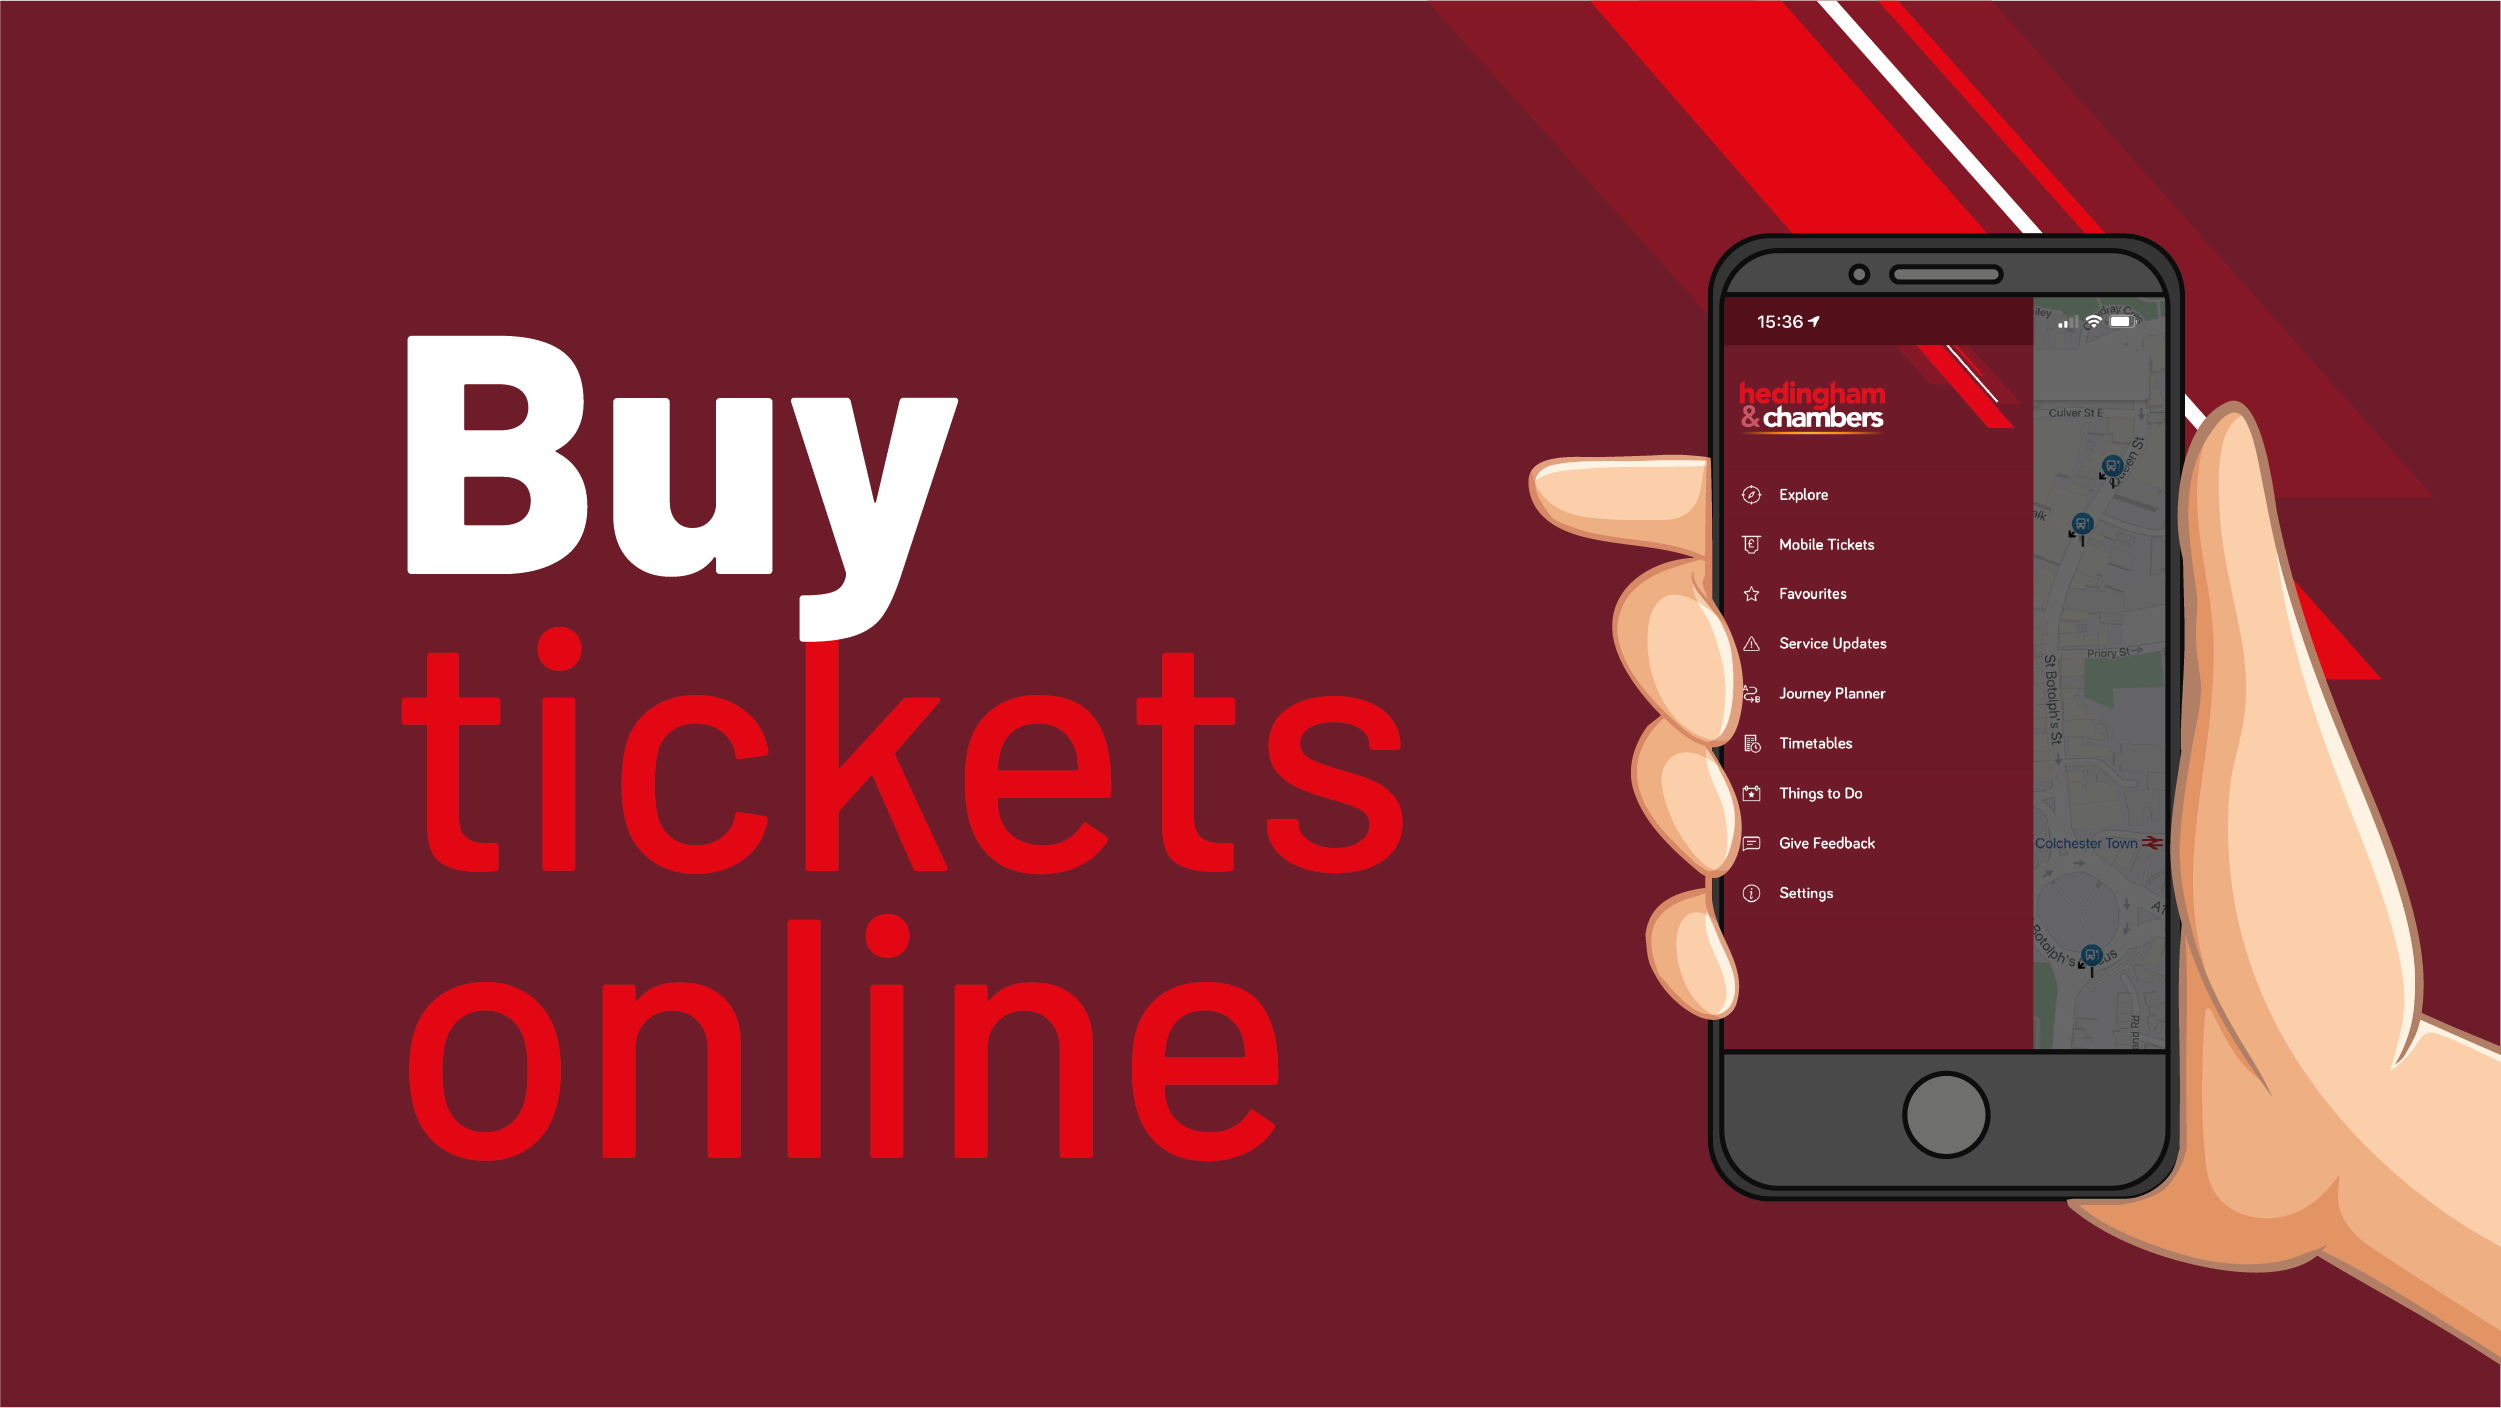 Image to buy tickets online